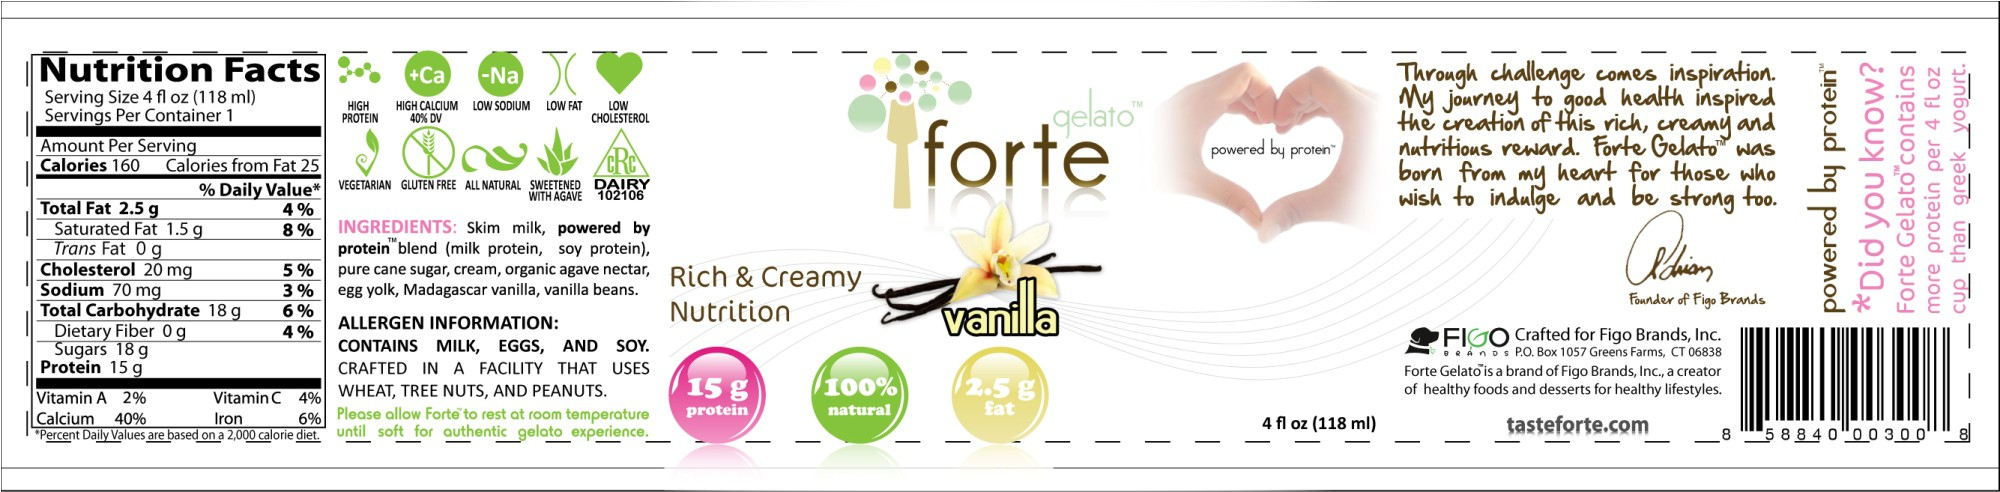 Ciao Bella & Haagen Dazs can't compete with Forte Gelato - cup design project